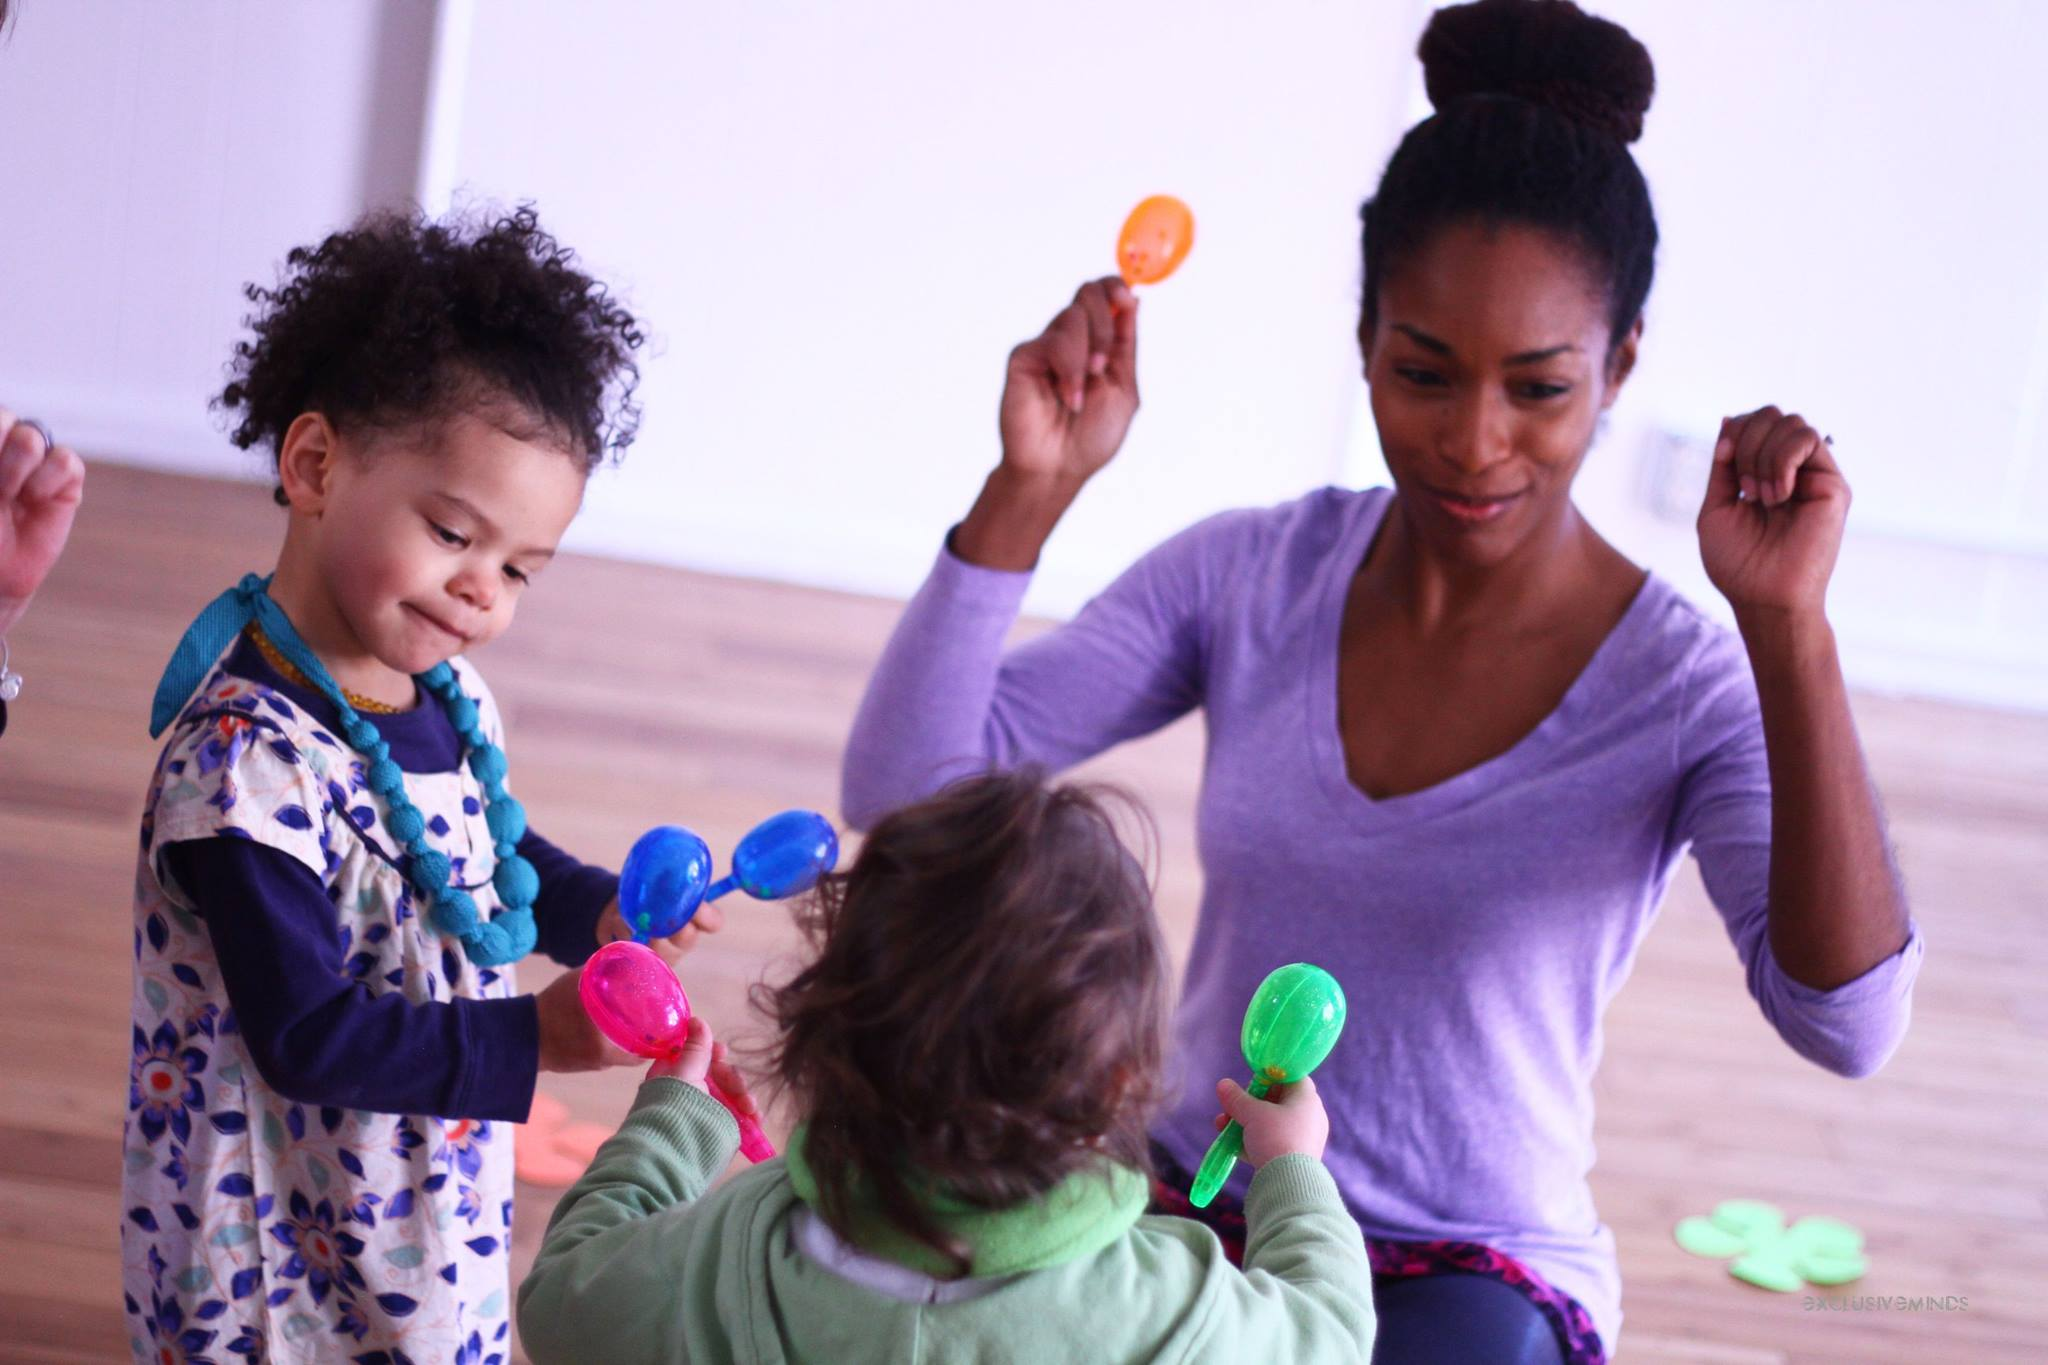 Rhythm + Movement - Have a little one that loves to wiggle? This class is for you!Rhythm & Movement combines creative movement and basic music education to encourage self-confidence, creativity, body awareness and focus. Taught by Shirel Jones, owner of Lil' Dumplins.Ages 1.5-3y________$12/class | Free for Mama Hub members$60/6 classes